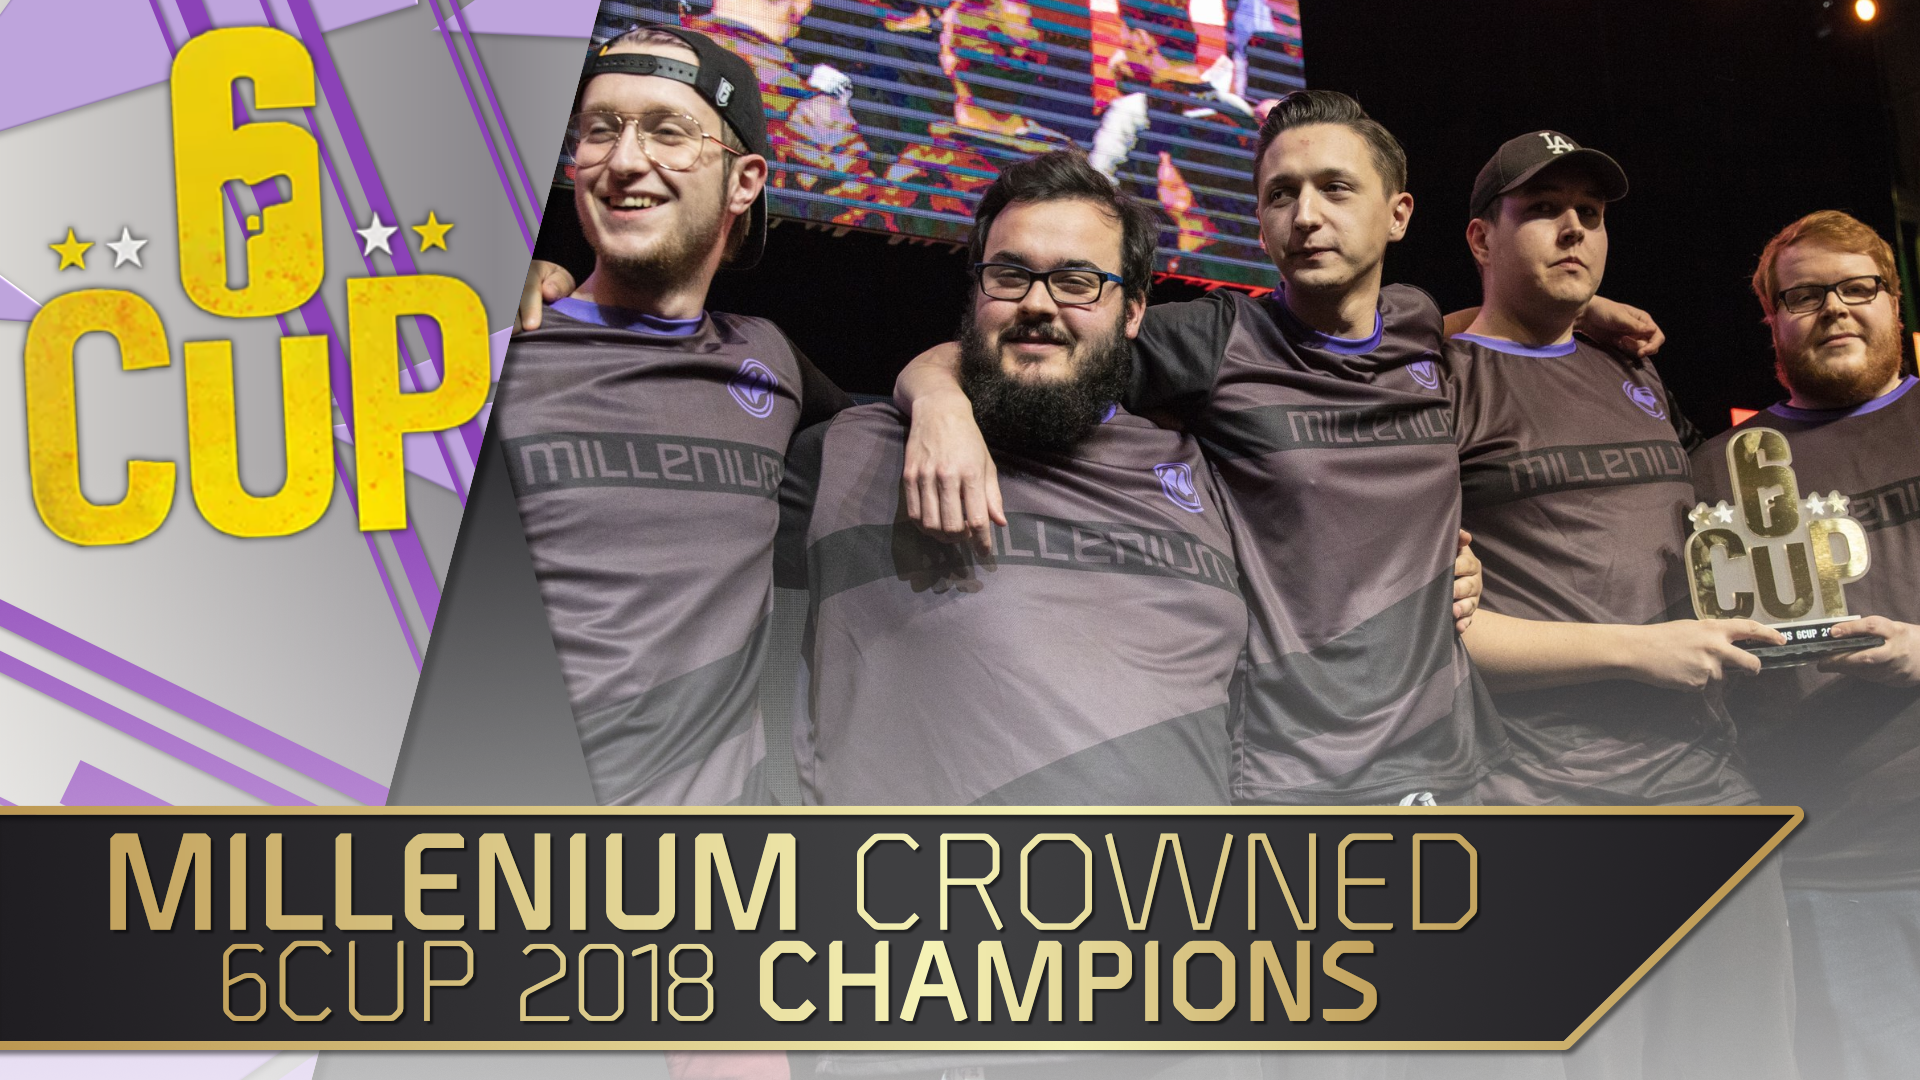 Millenium Crowned Champions of France